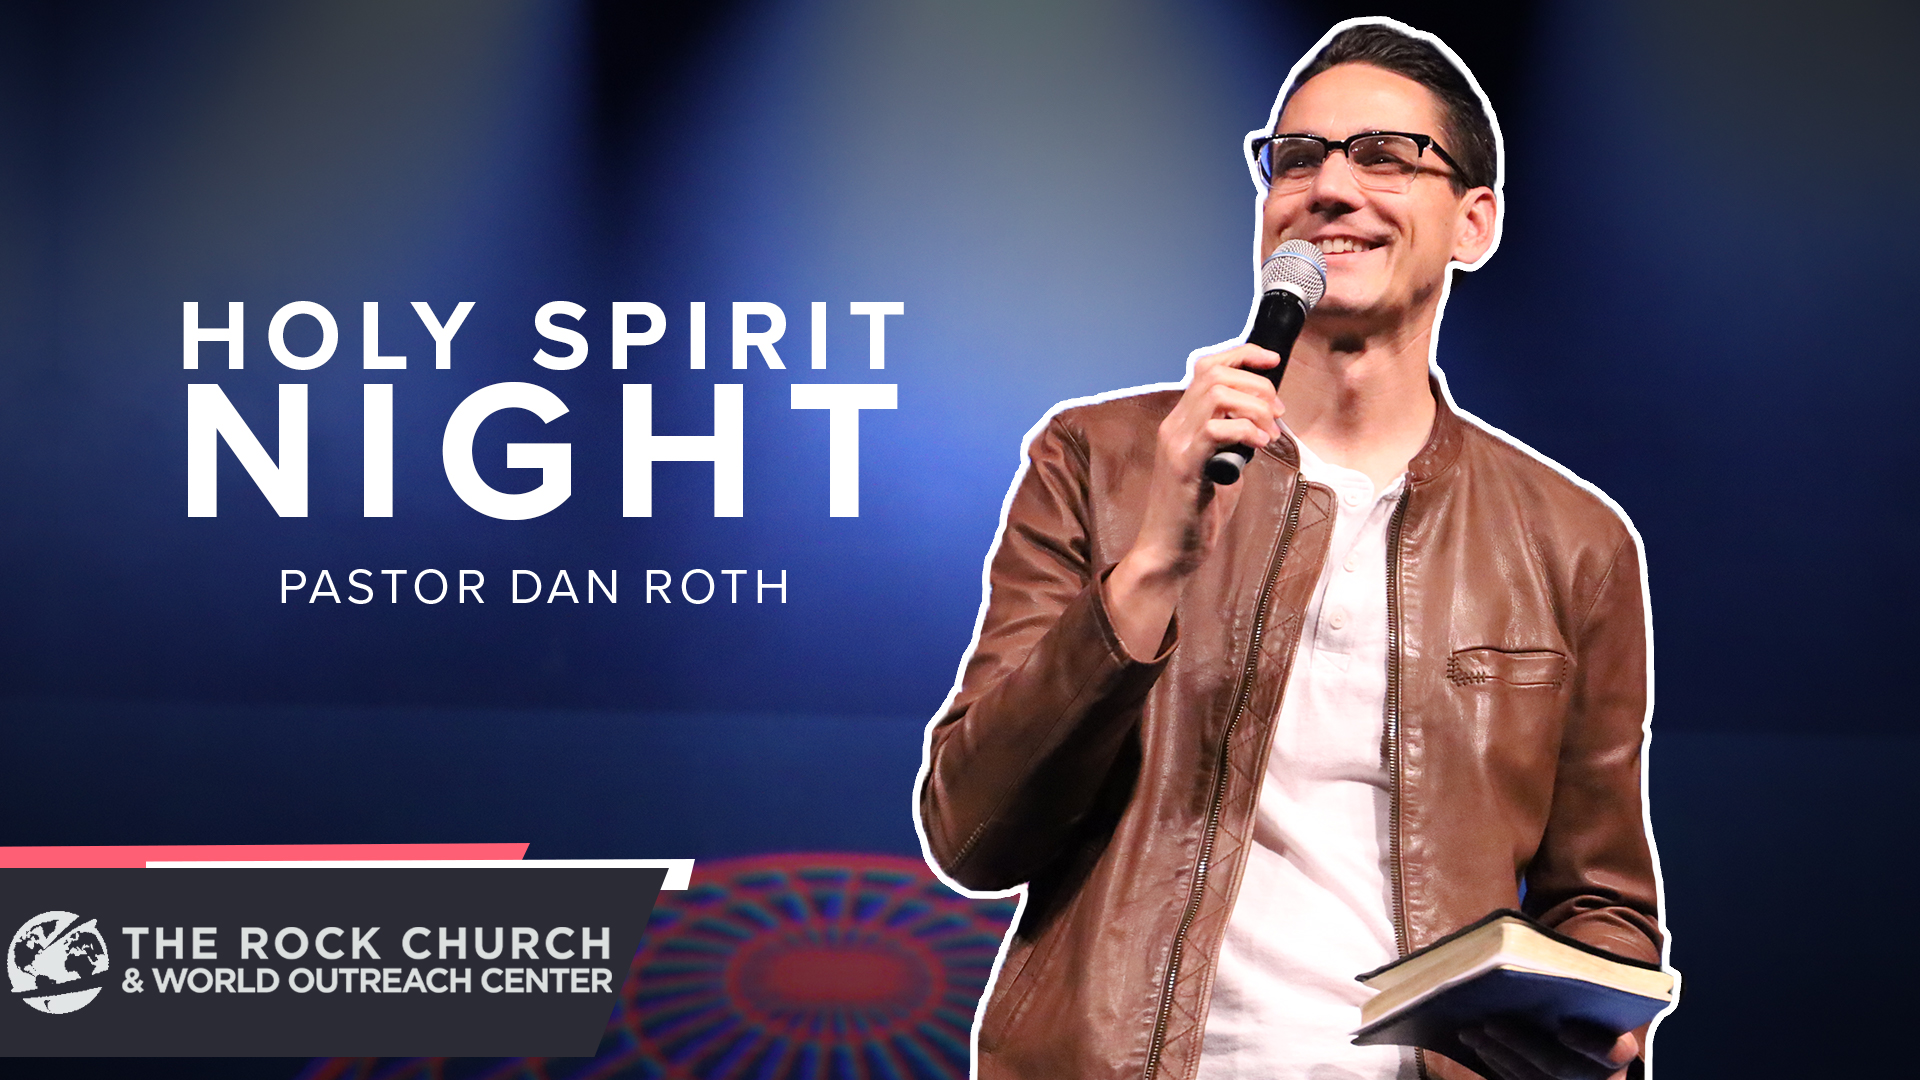 Watch Holy Spirit Night